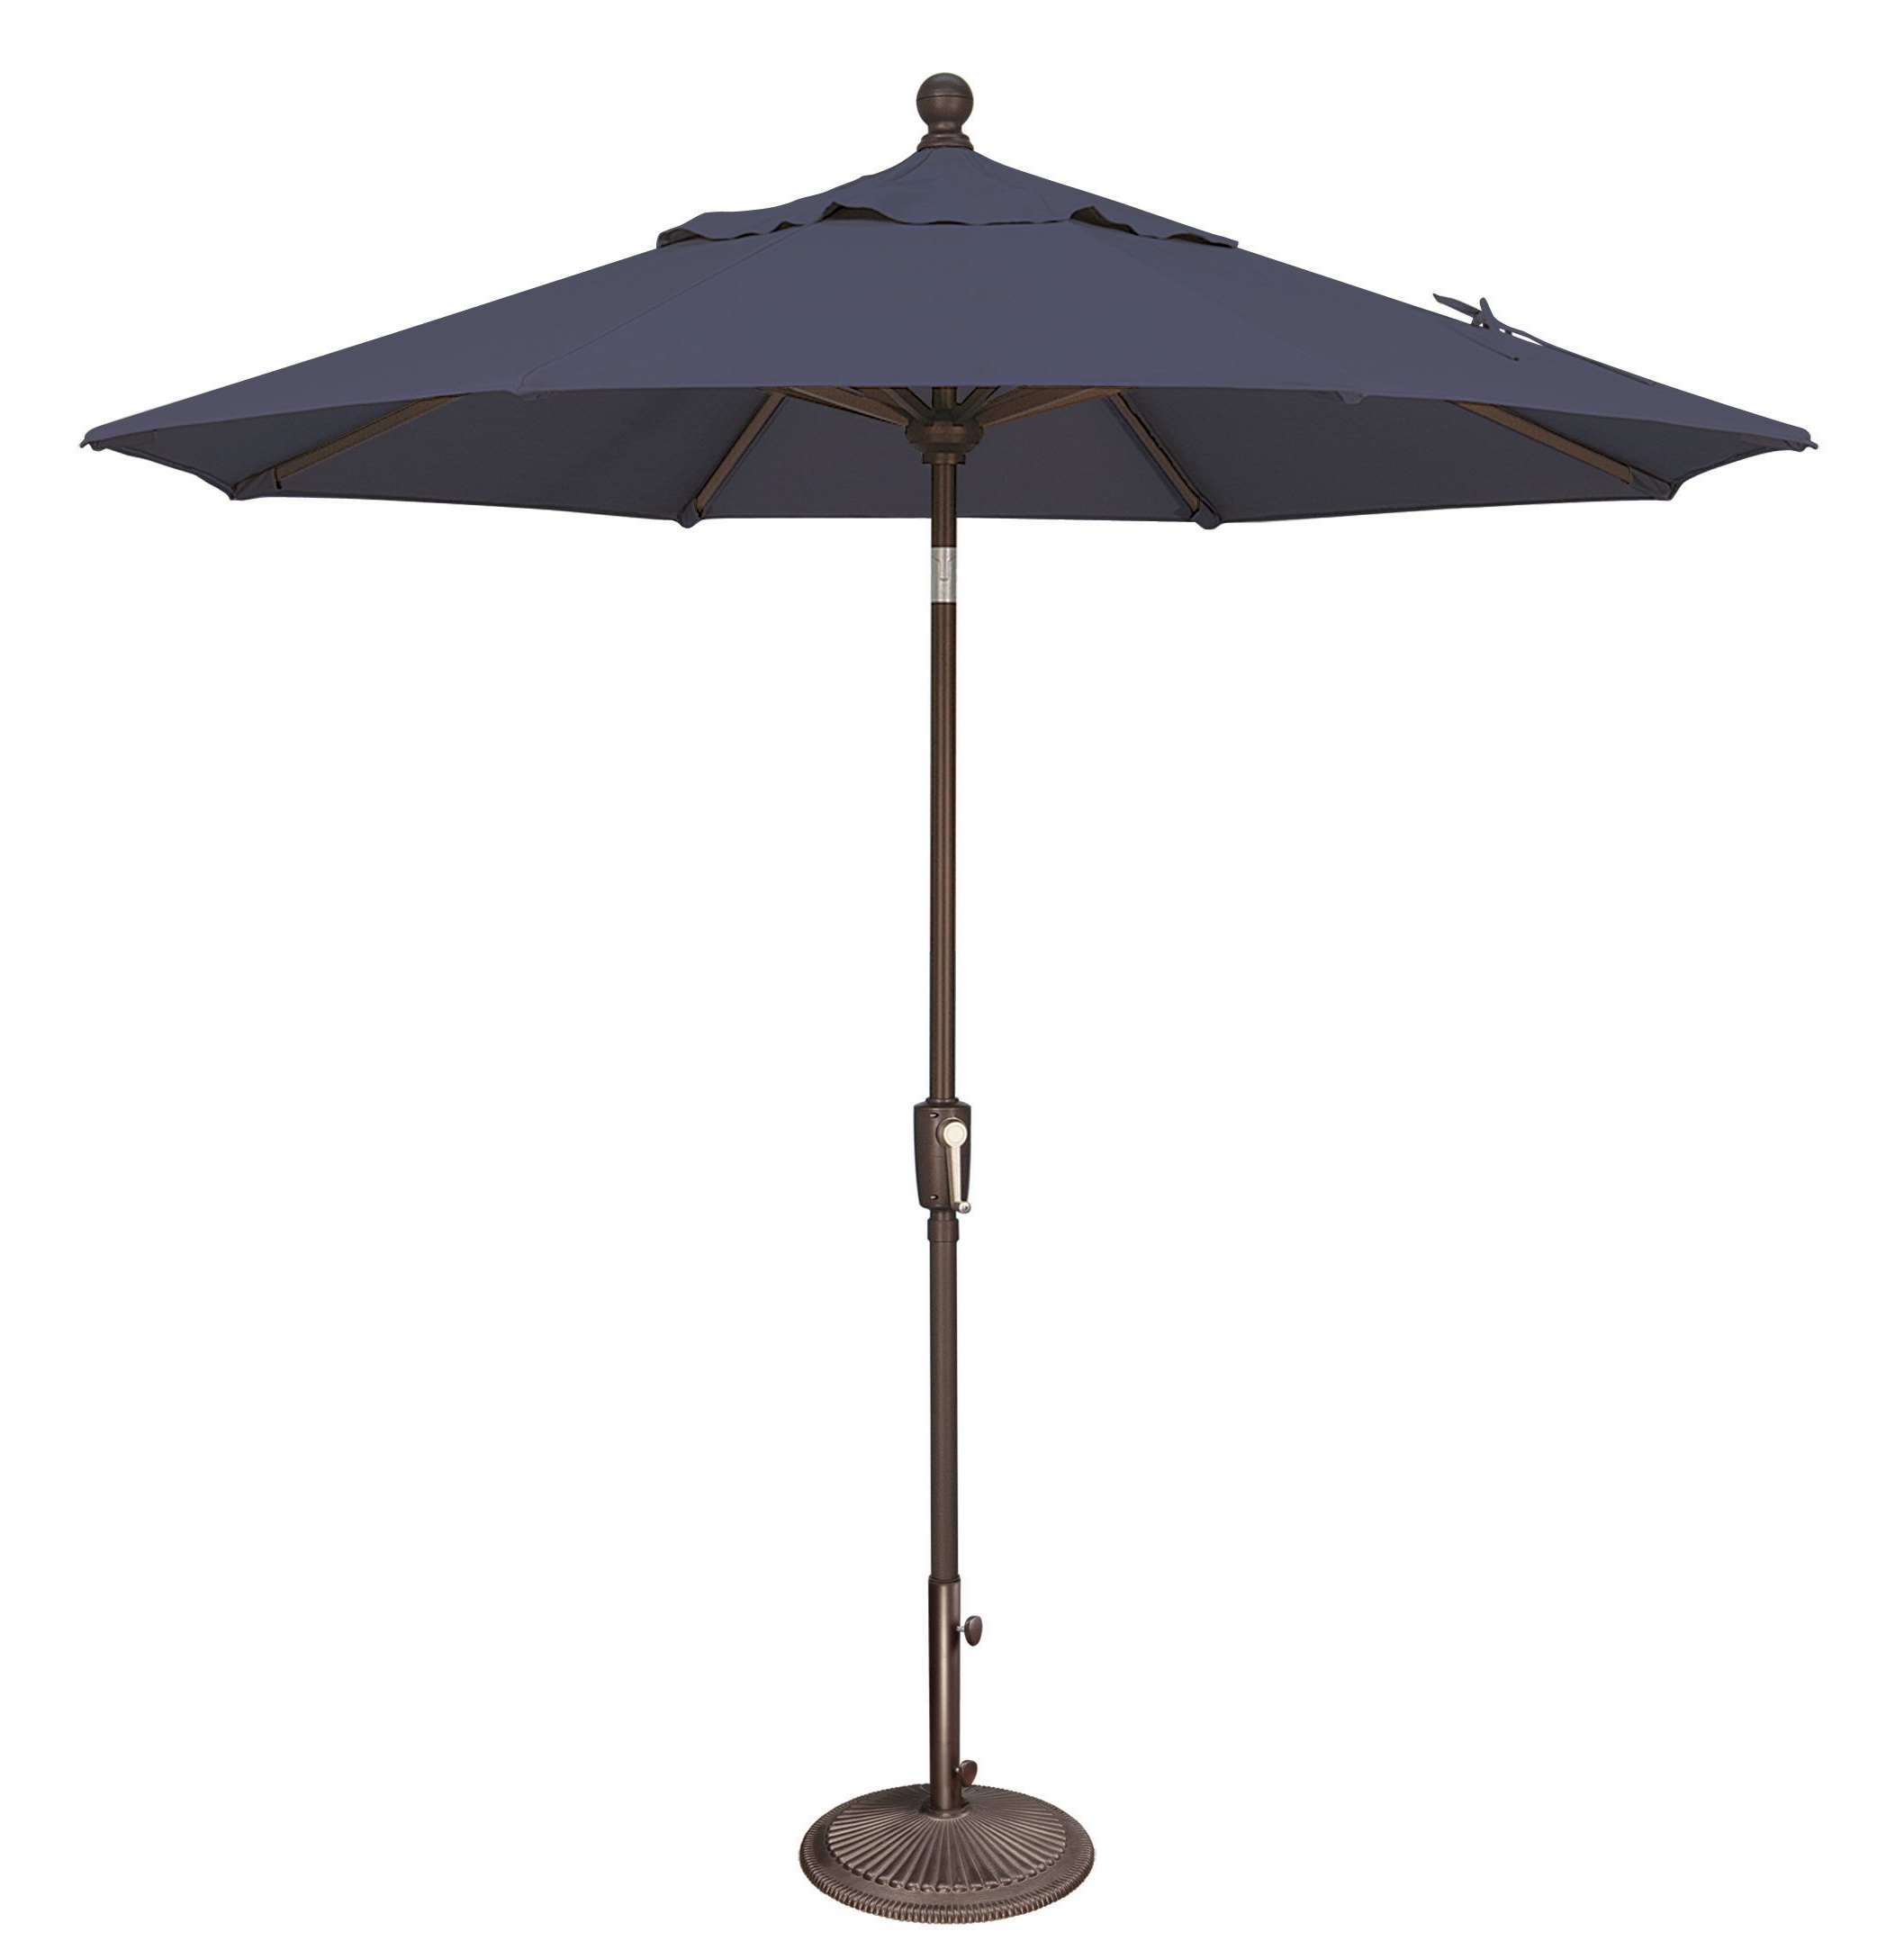 2020 Launceston Rectangular Market Umbrellas With Launceston 7.5' Market Umbrella (Gallery 4 of 20)